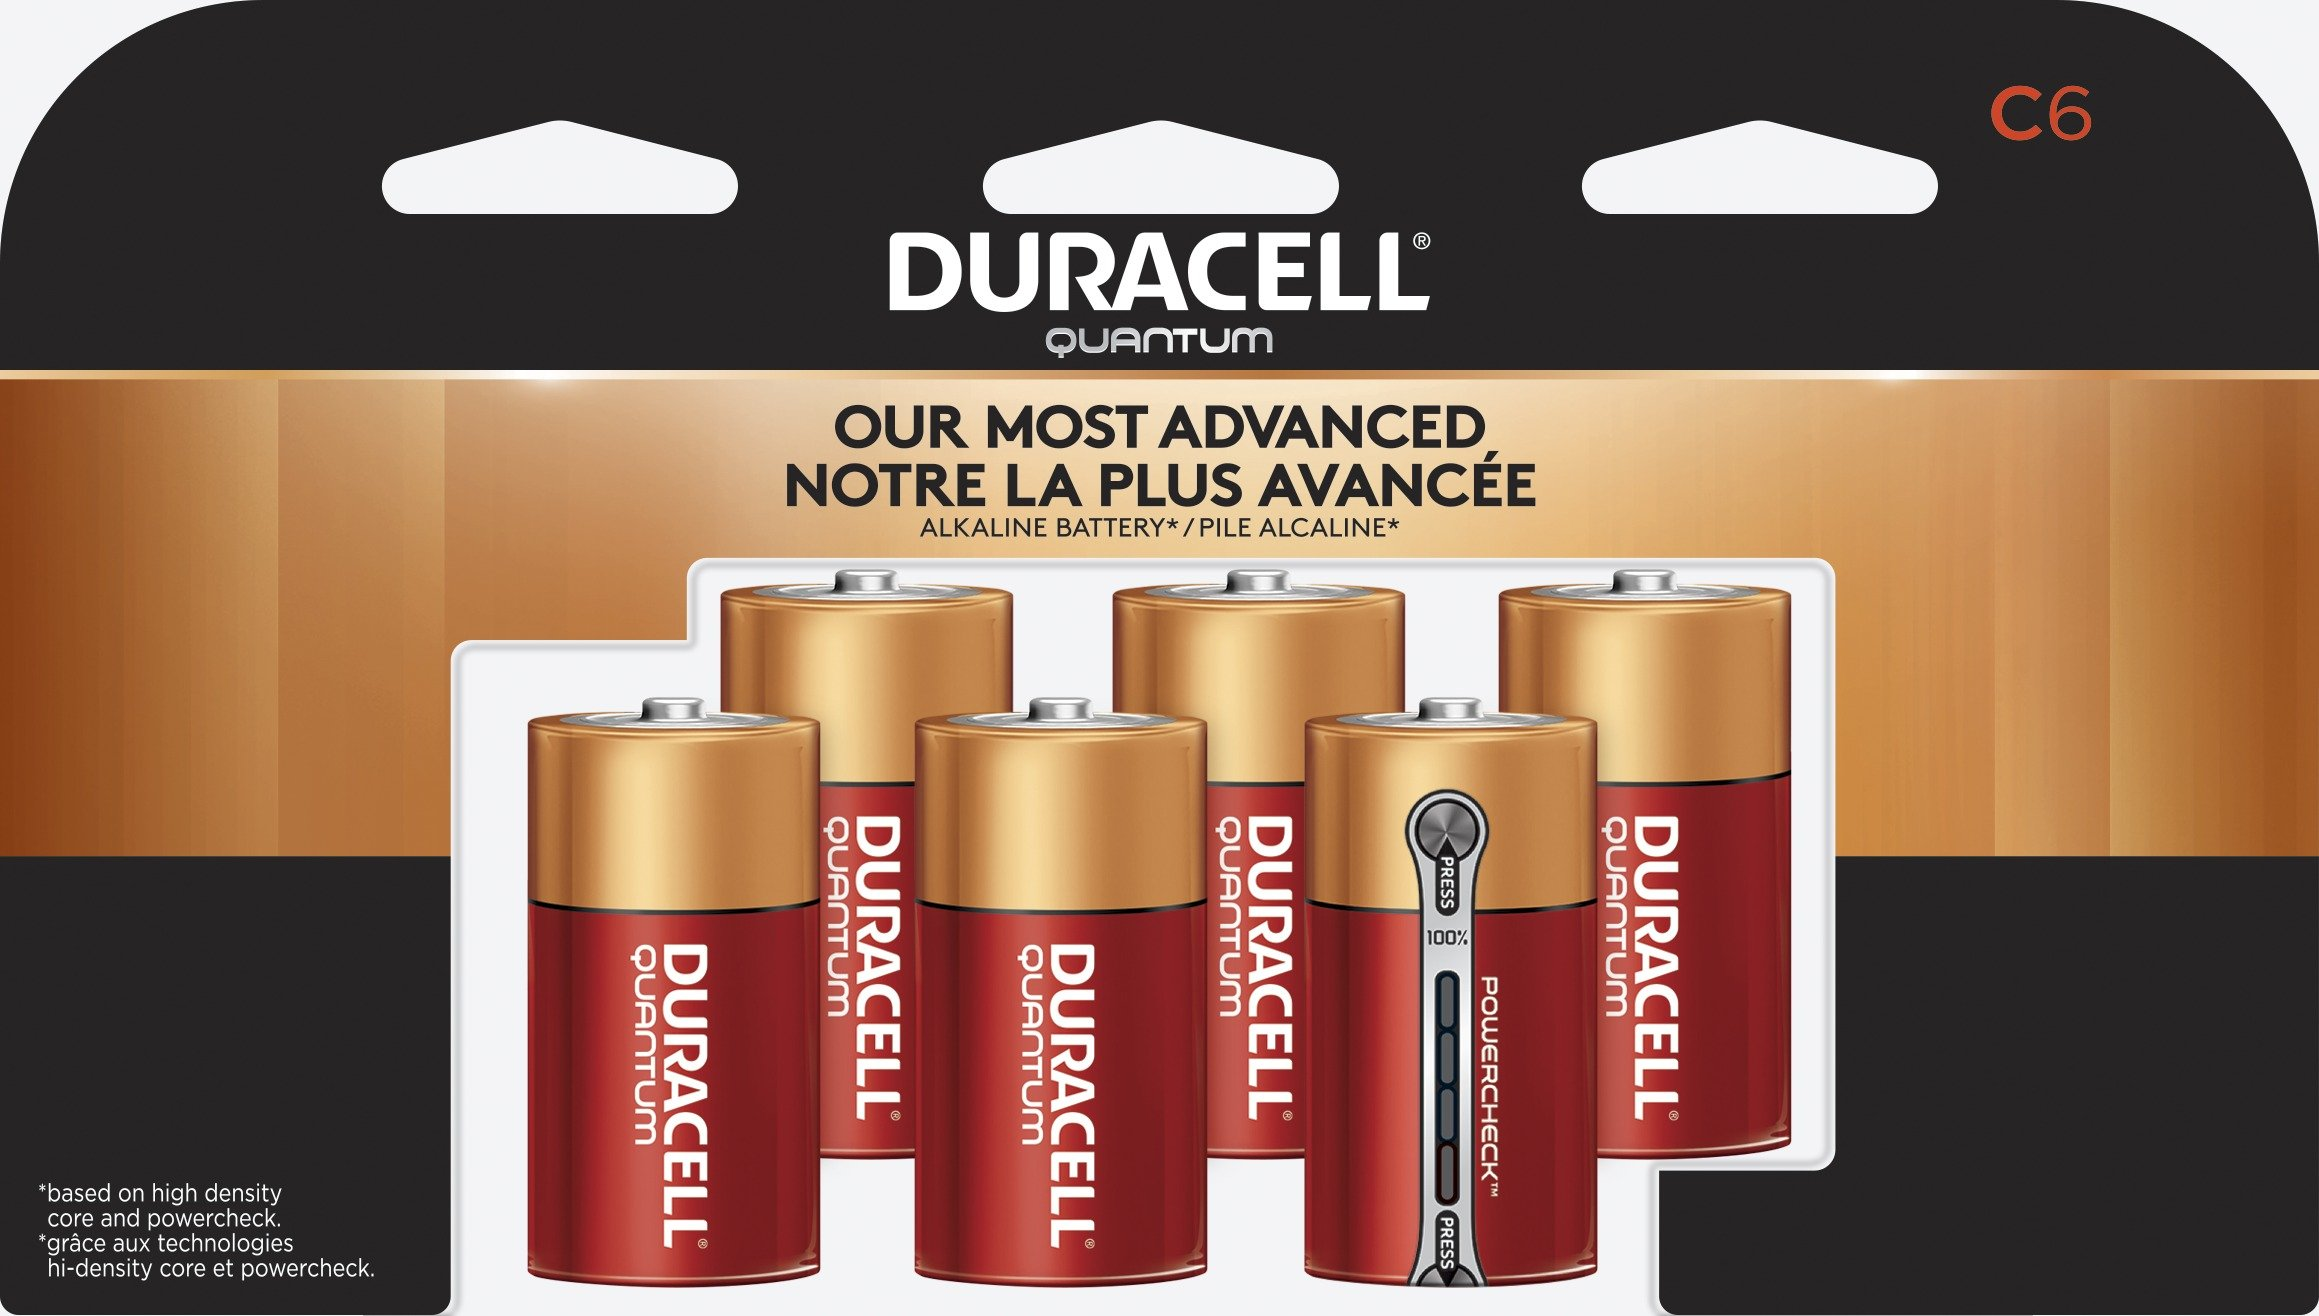 Duracell - Quantum C Alkaline Batteries - long lasting, all-purpose C battery for household and business - 6 count